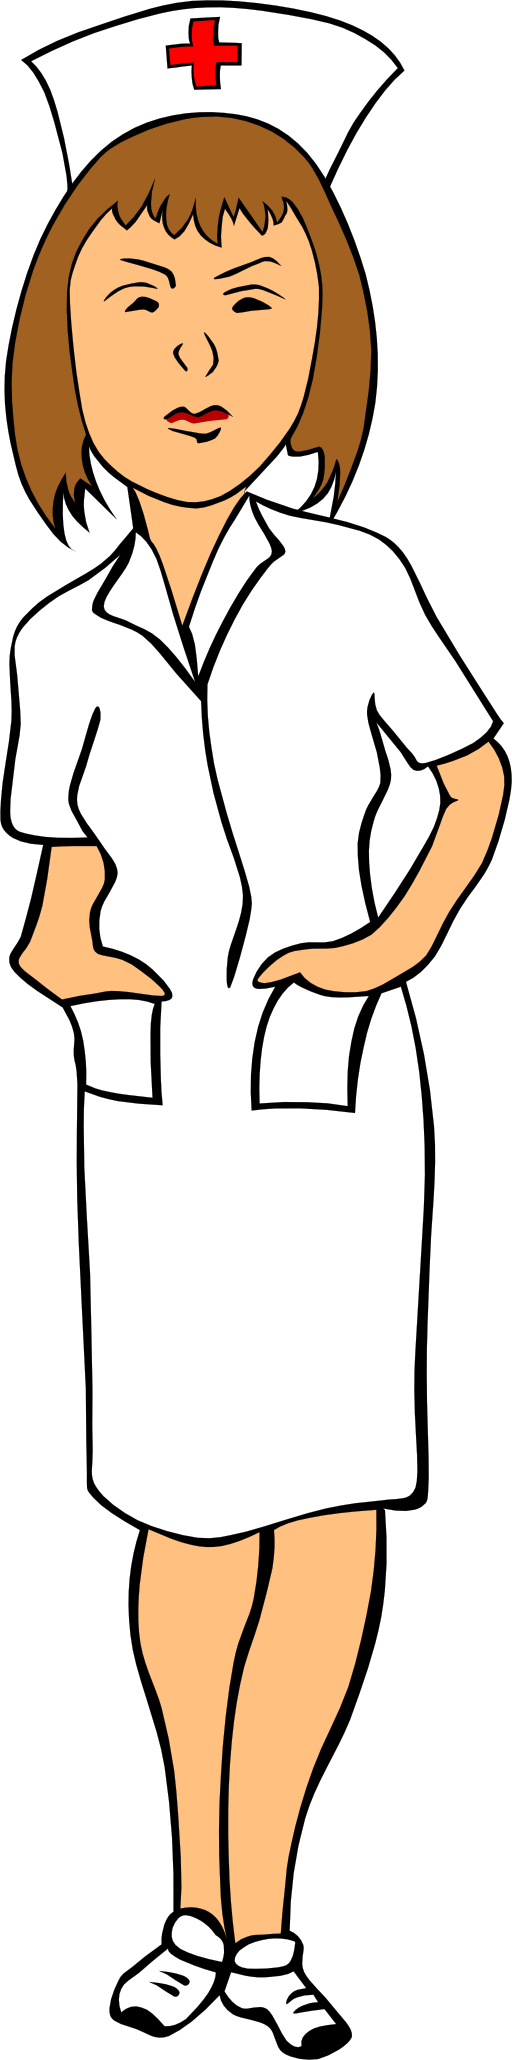 Nurse clipart hero. Free female doctor download